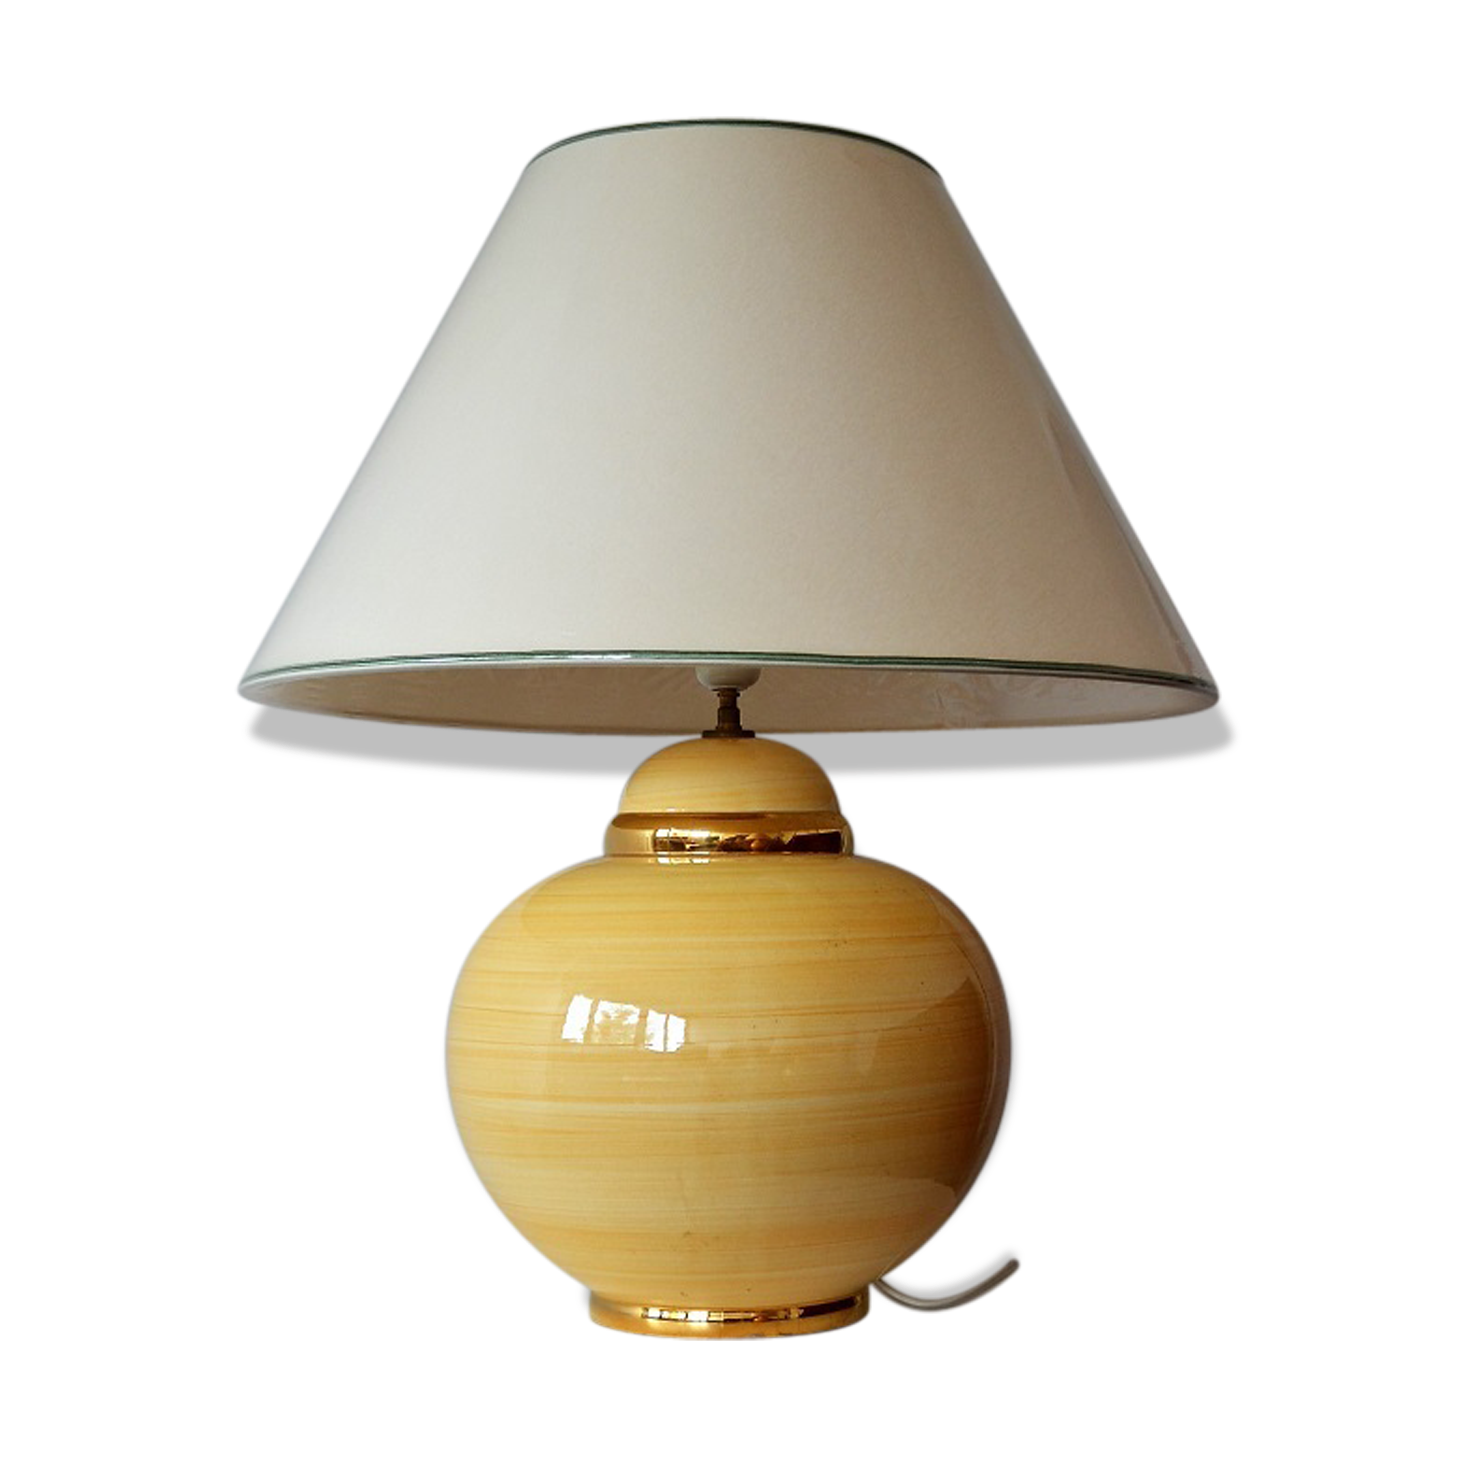 Lampe De Salon Kostka Ceramics Porcelain And Earthenware Yellow